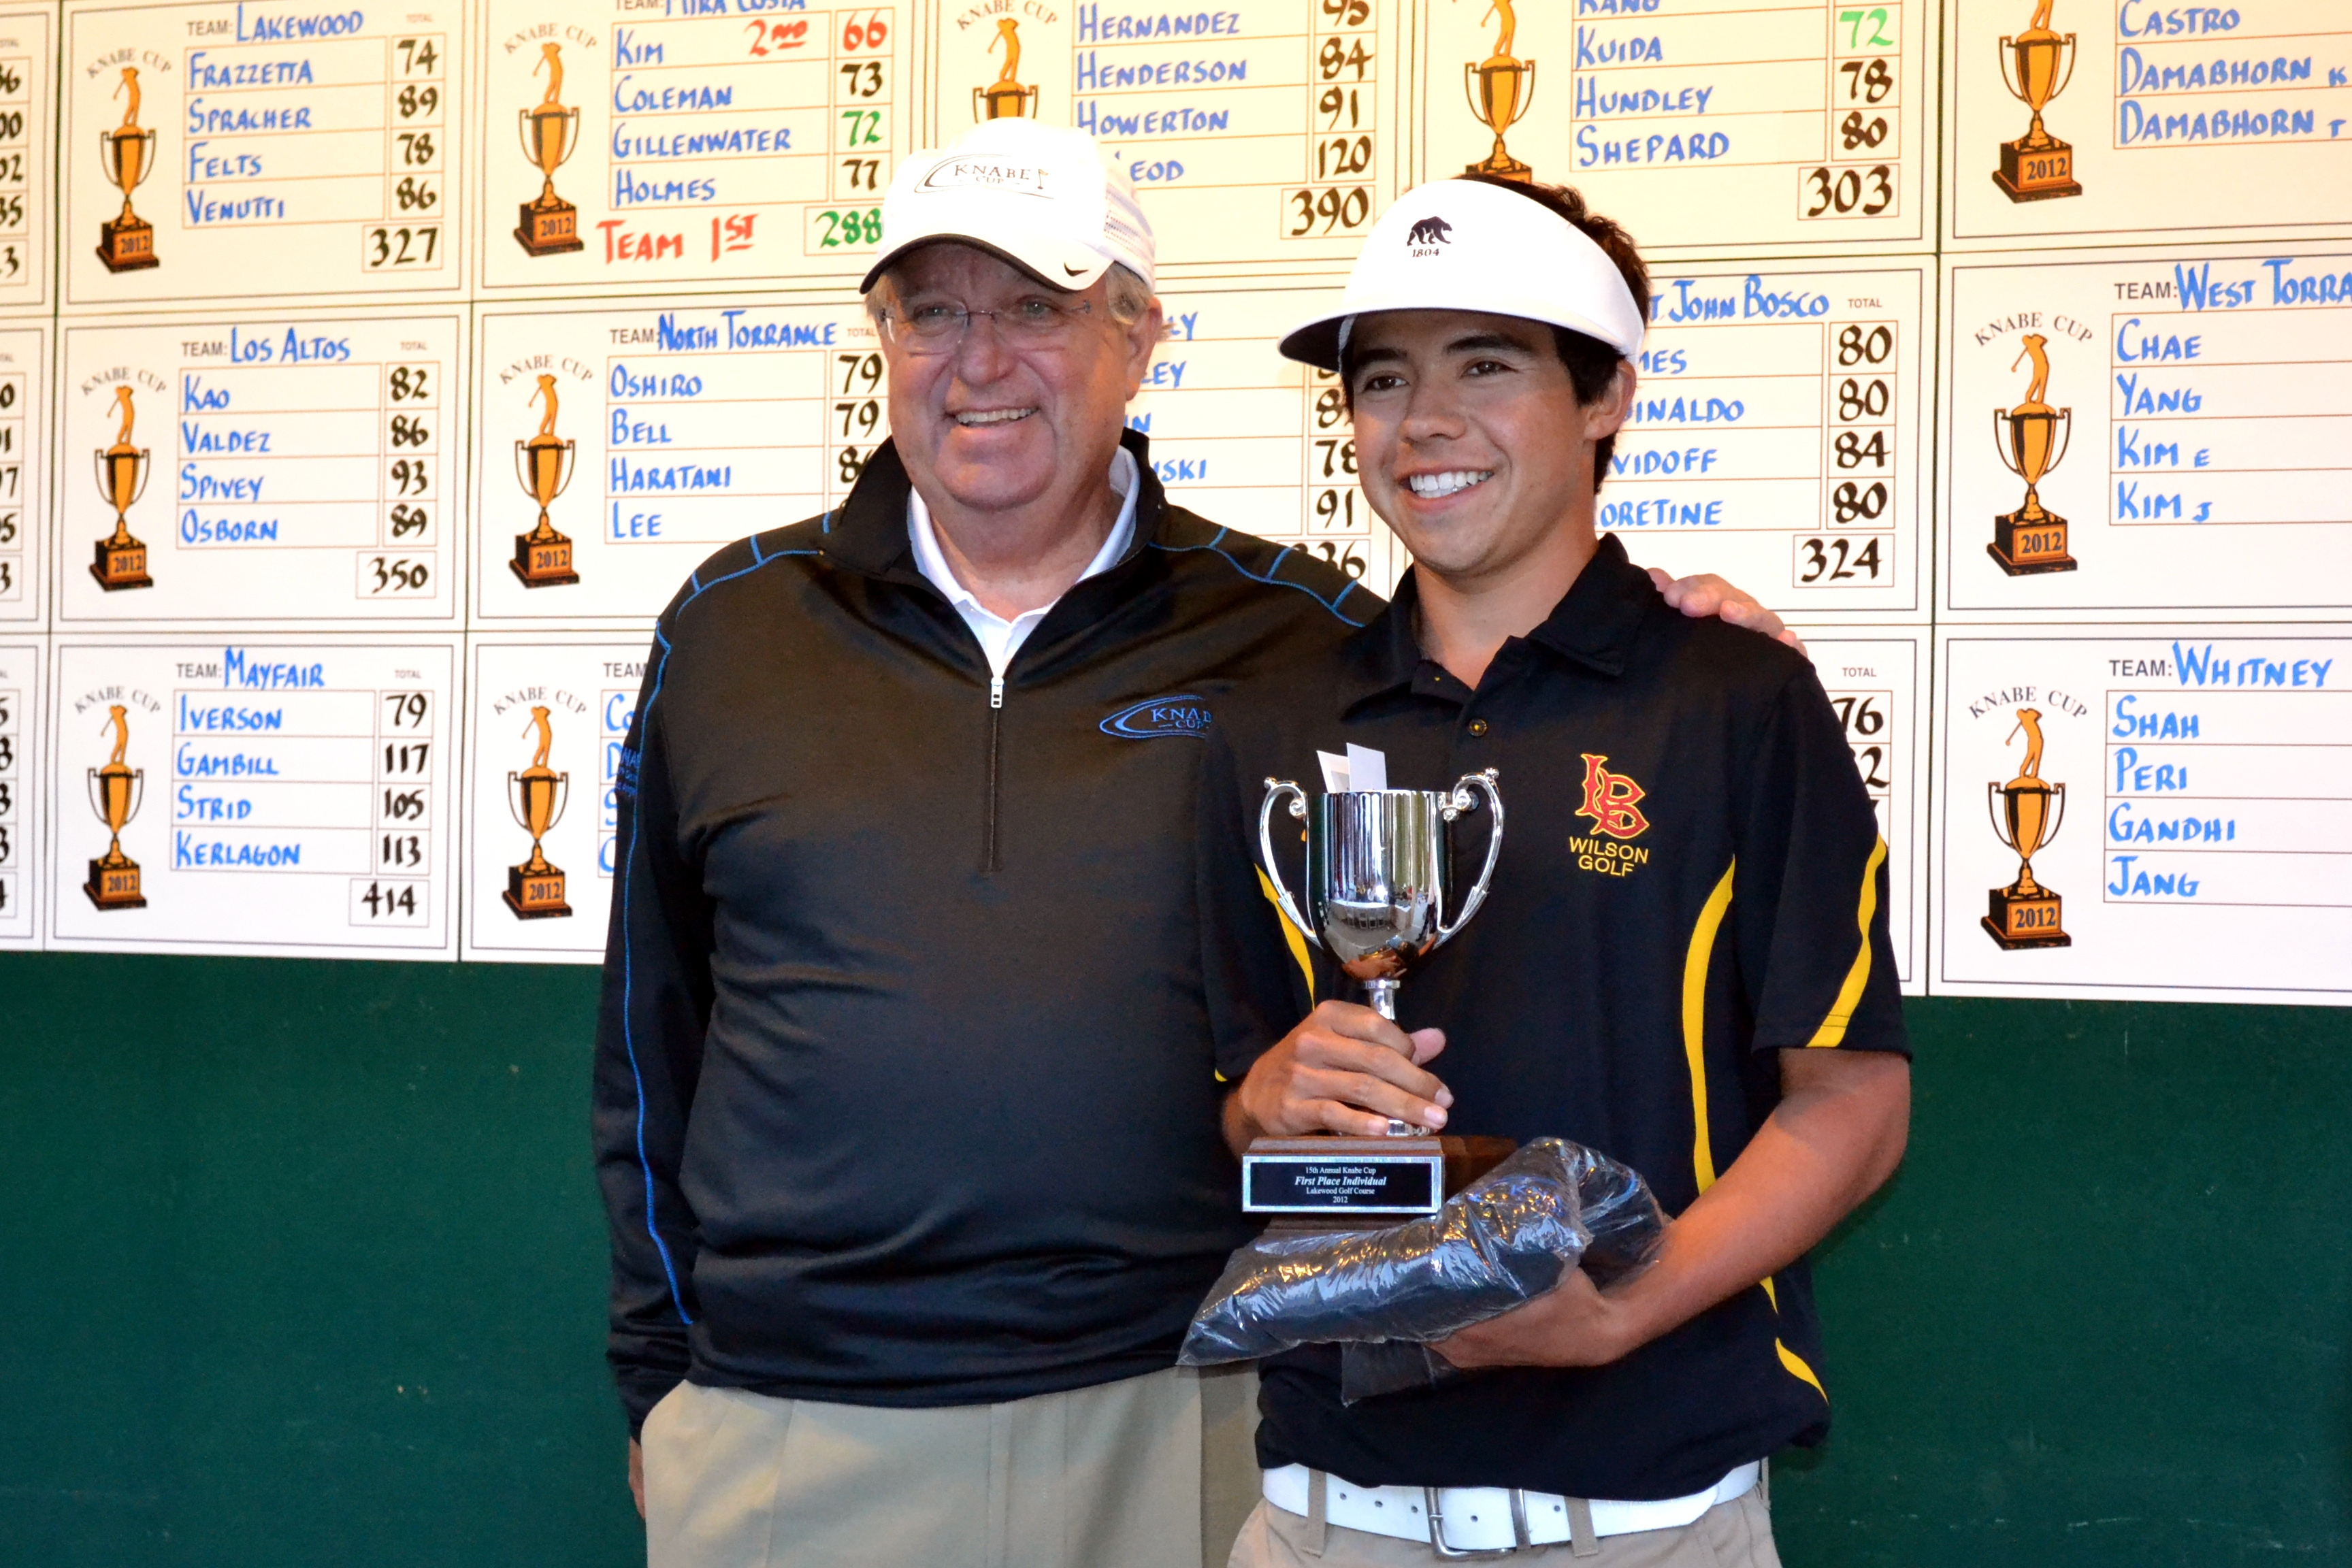 Andrew Morgan - 2012 Knabe Cup Champion